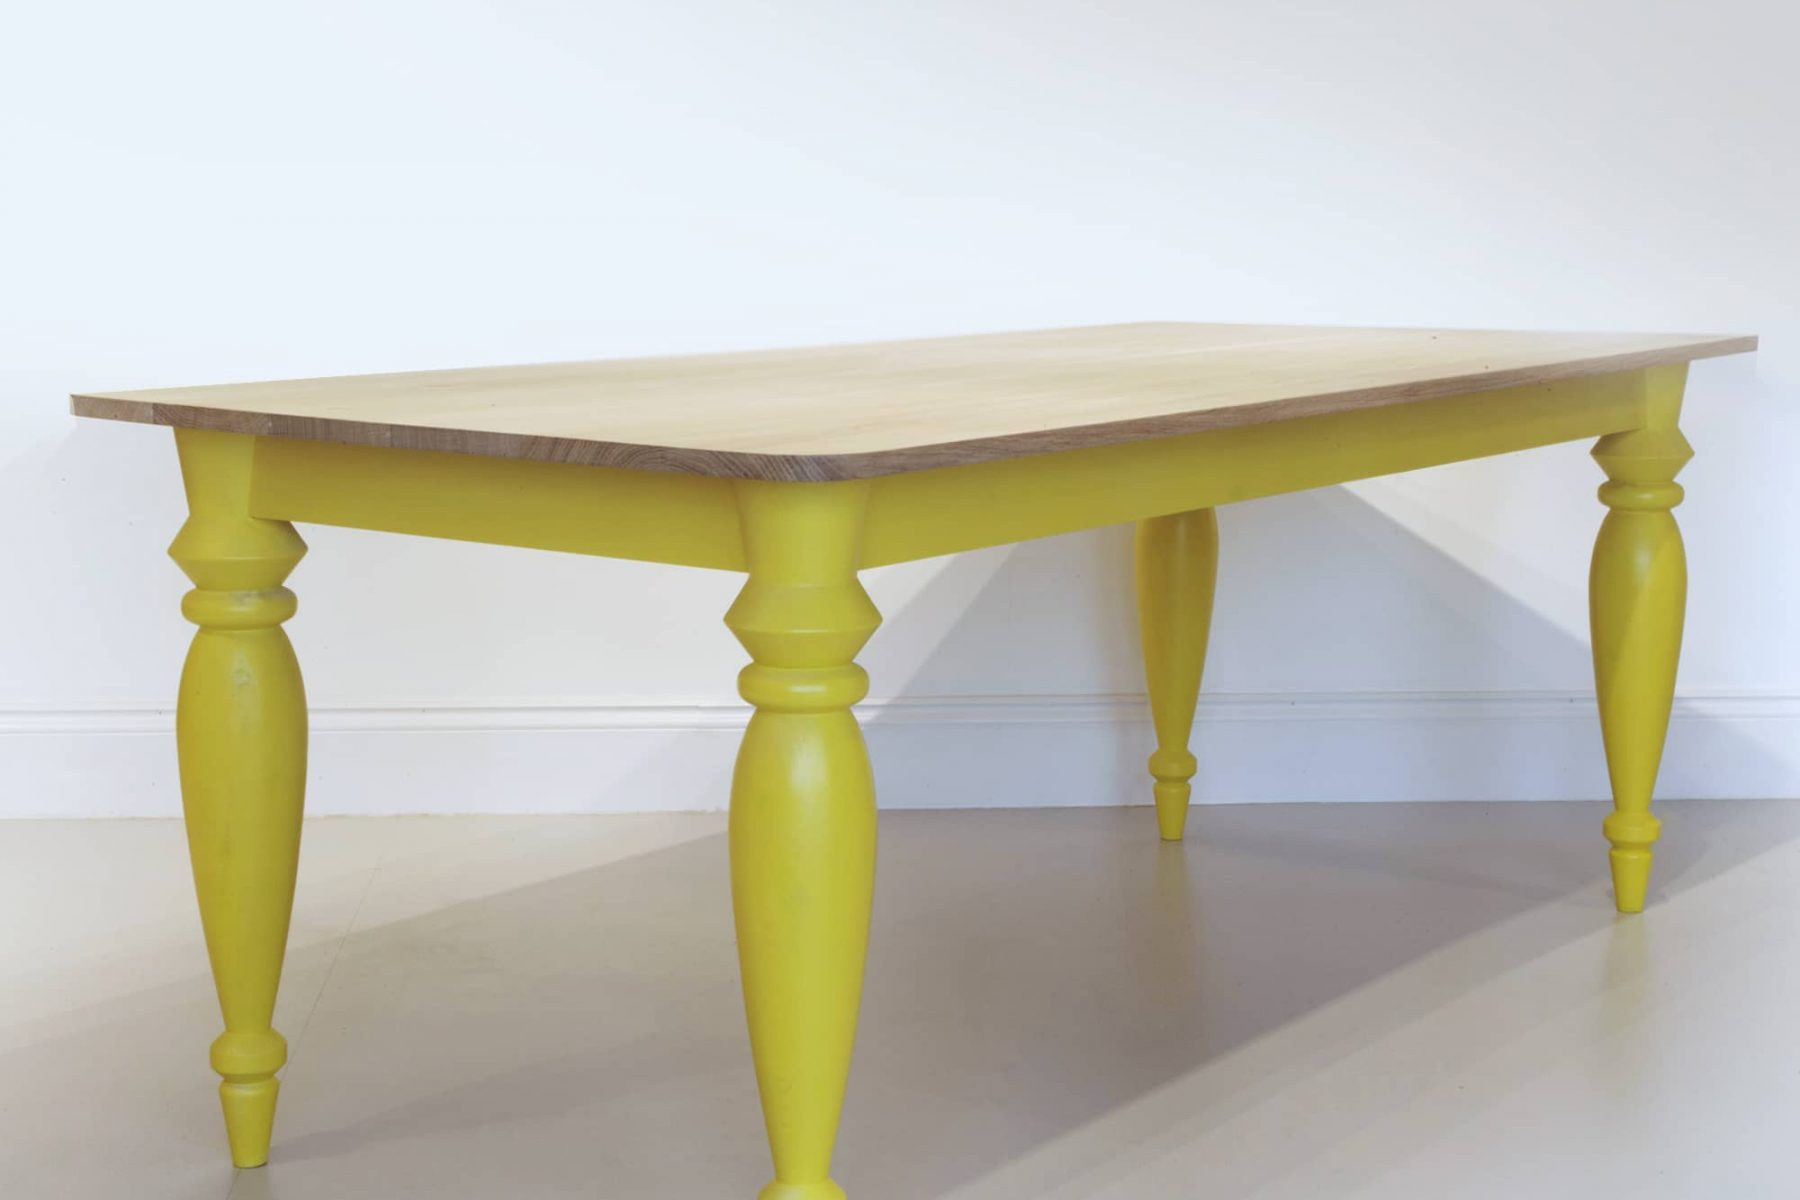 Contemporary wooden kitchen table with yellow legs